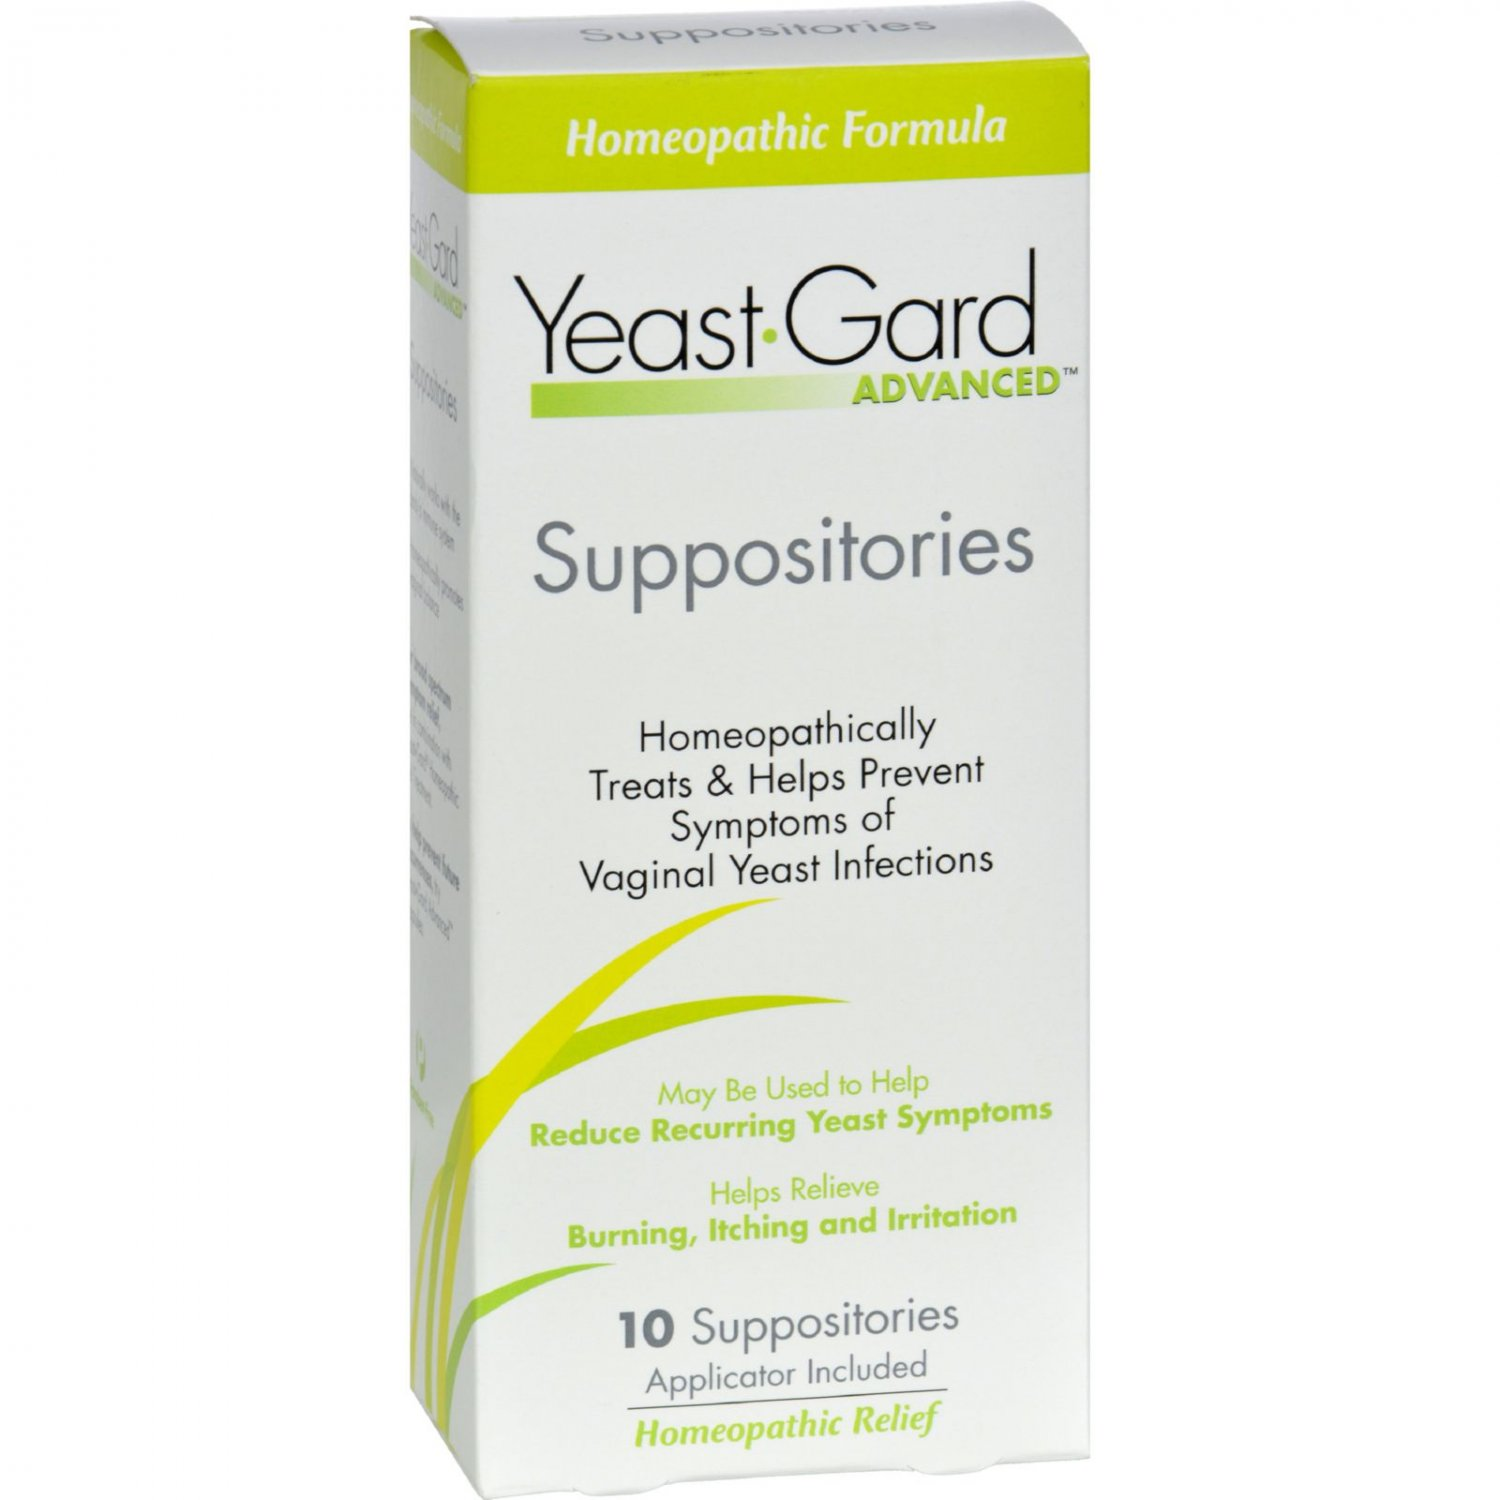 Women's Health Yeast-Gard Advanced Suppositories - 10 Suppositories